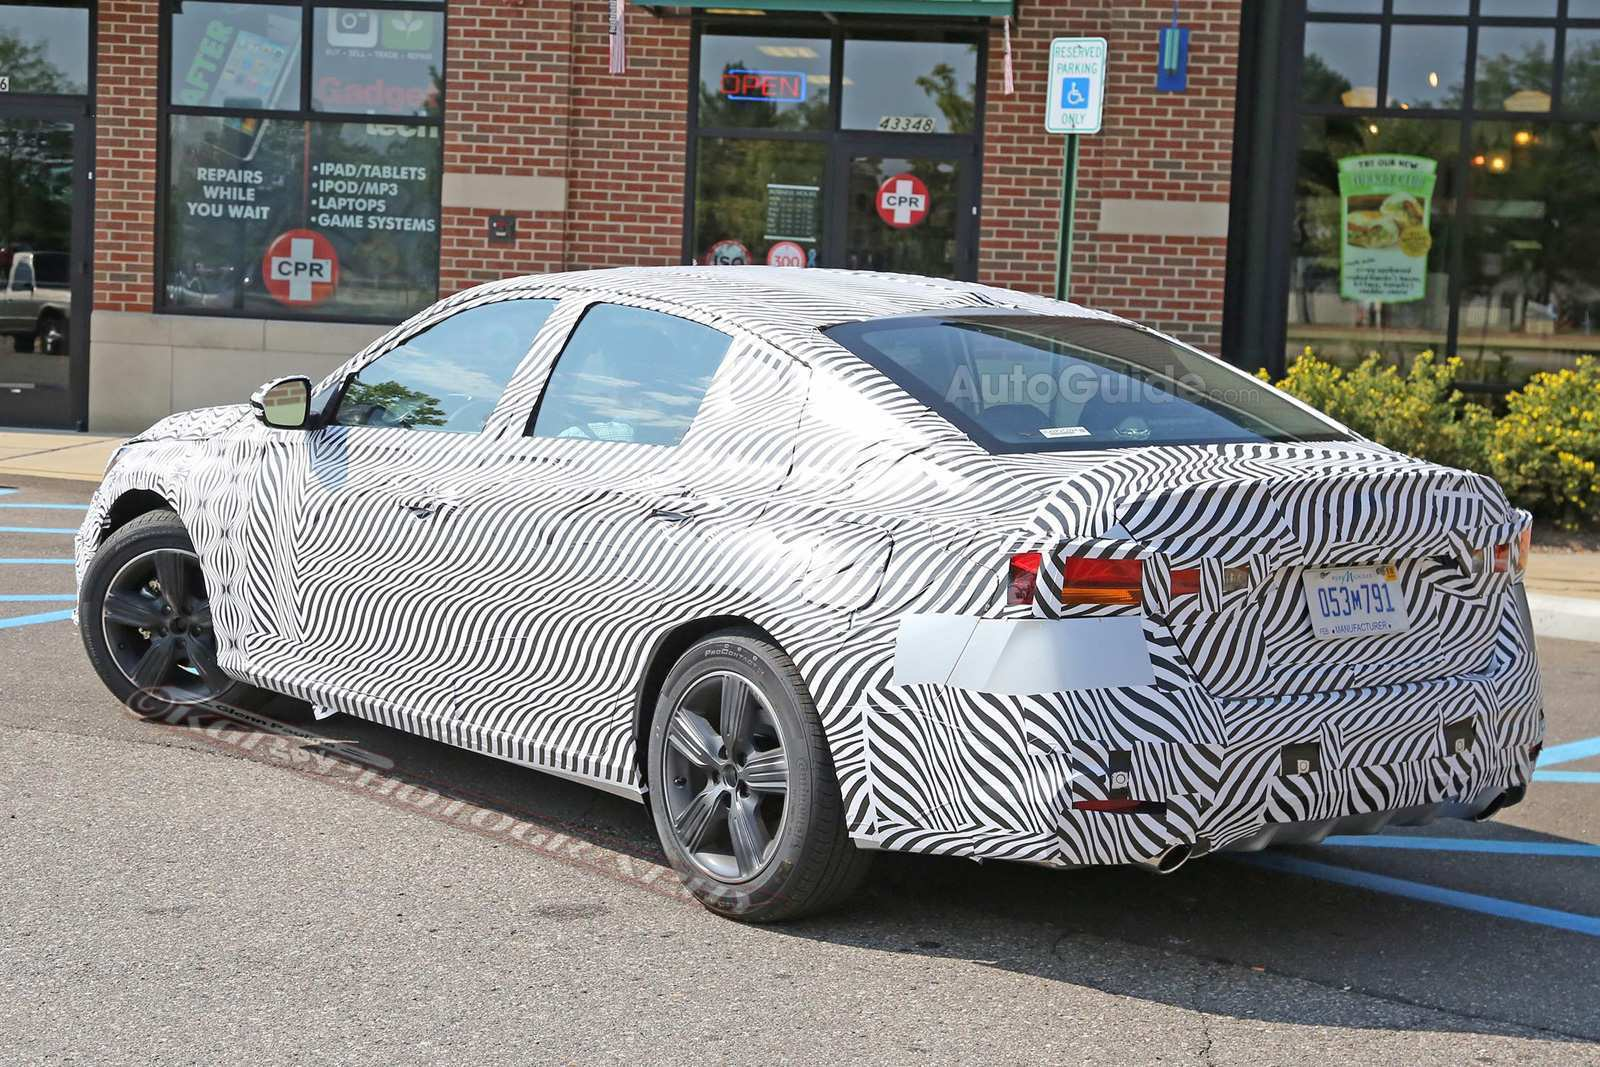 69 Gallery of 2019 Nissan Altima Spy Shots Review with 2019 Nissan Altima Spy Shots